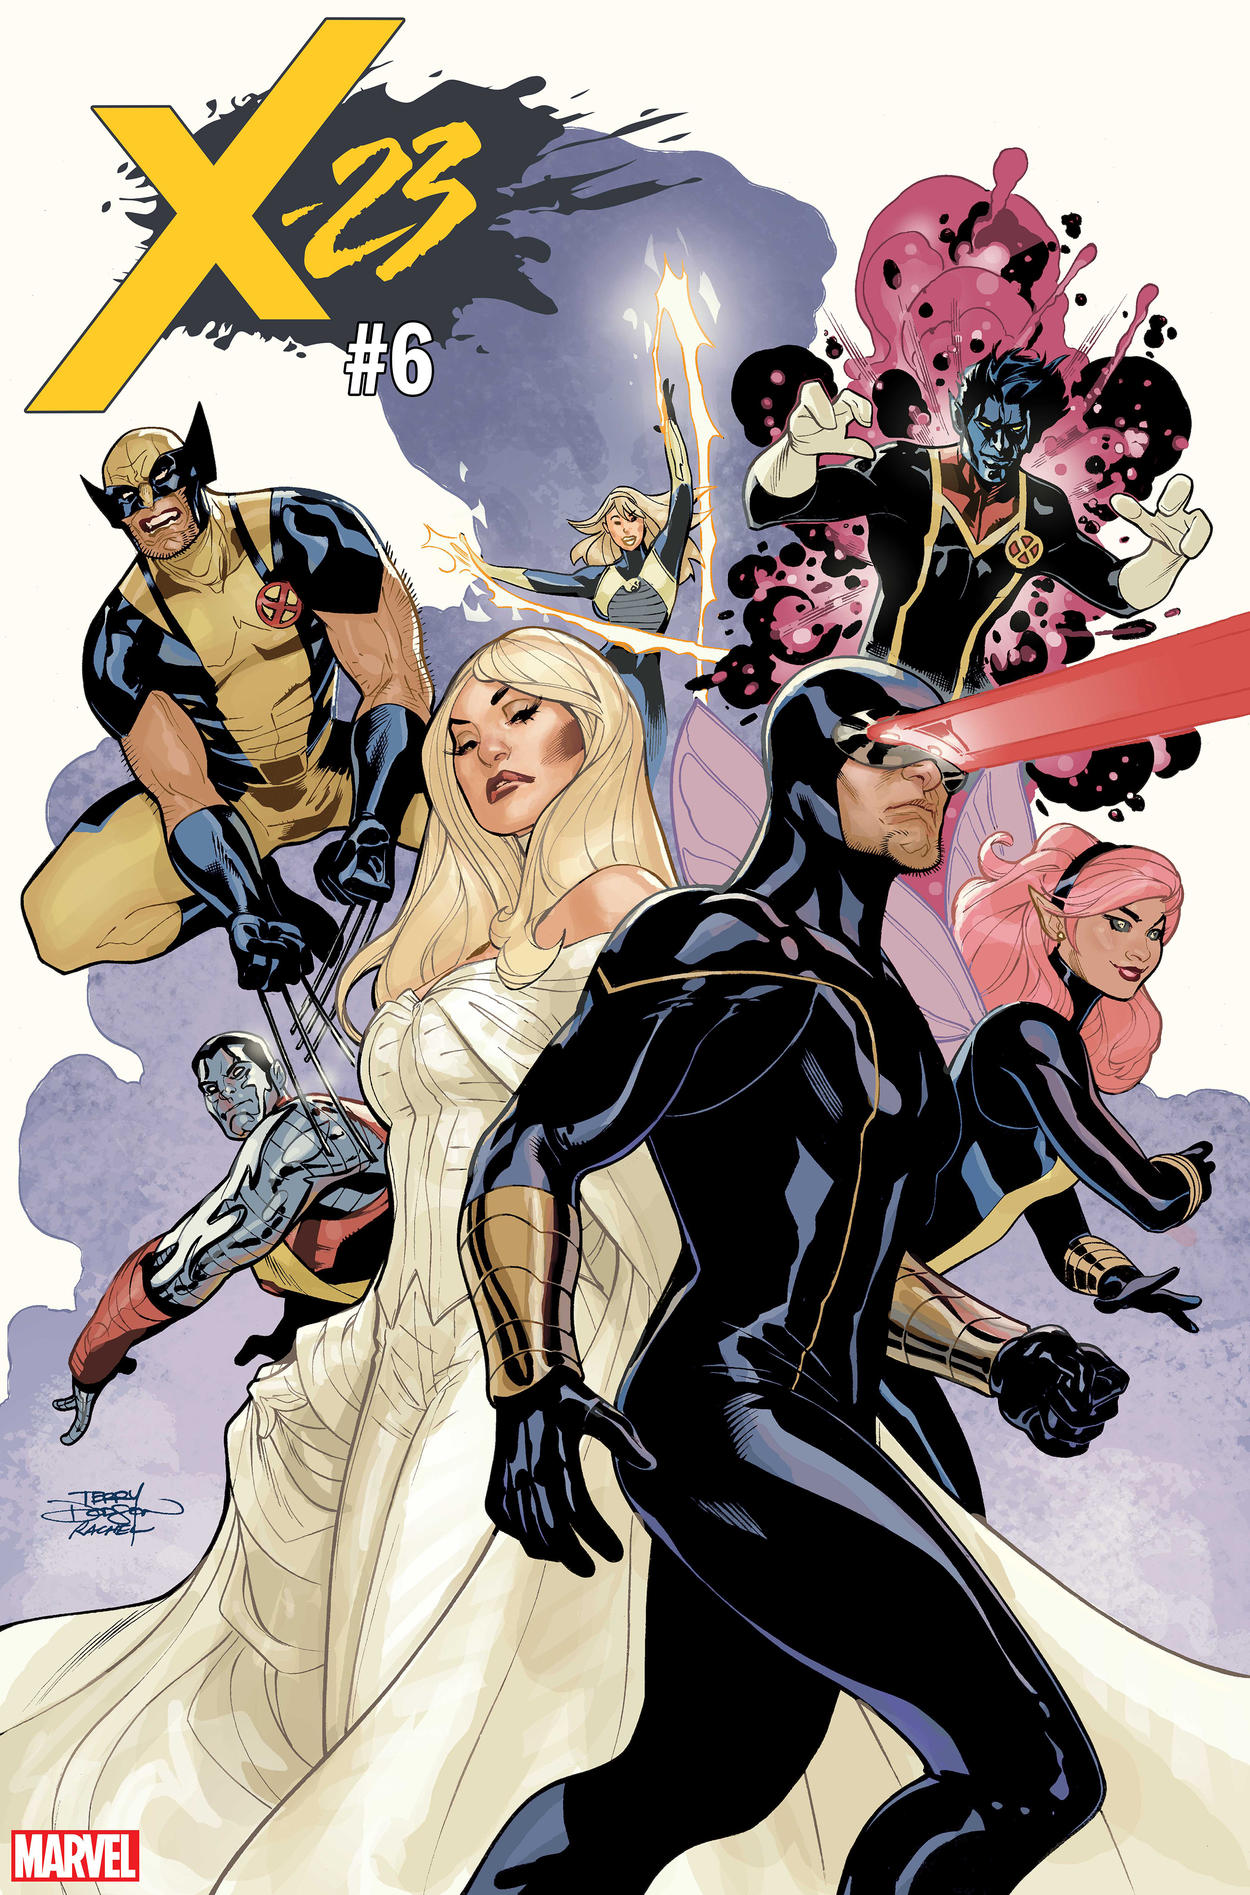 X-23 #6 UNCANNY X-MEN VARIANT COVER by Terry Dodson